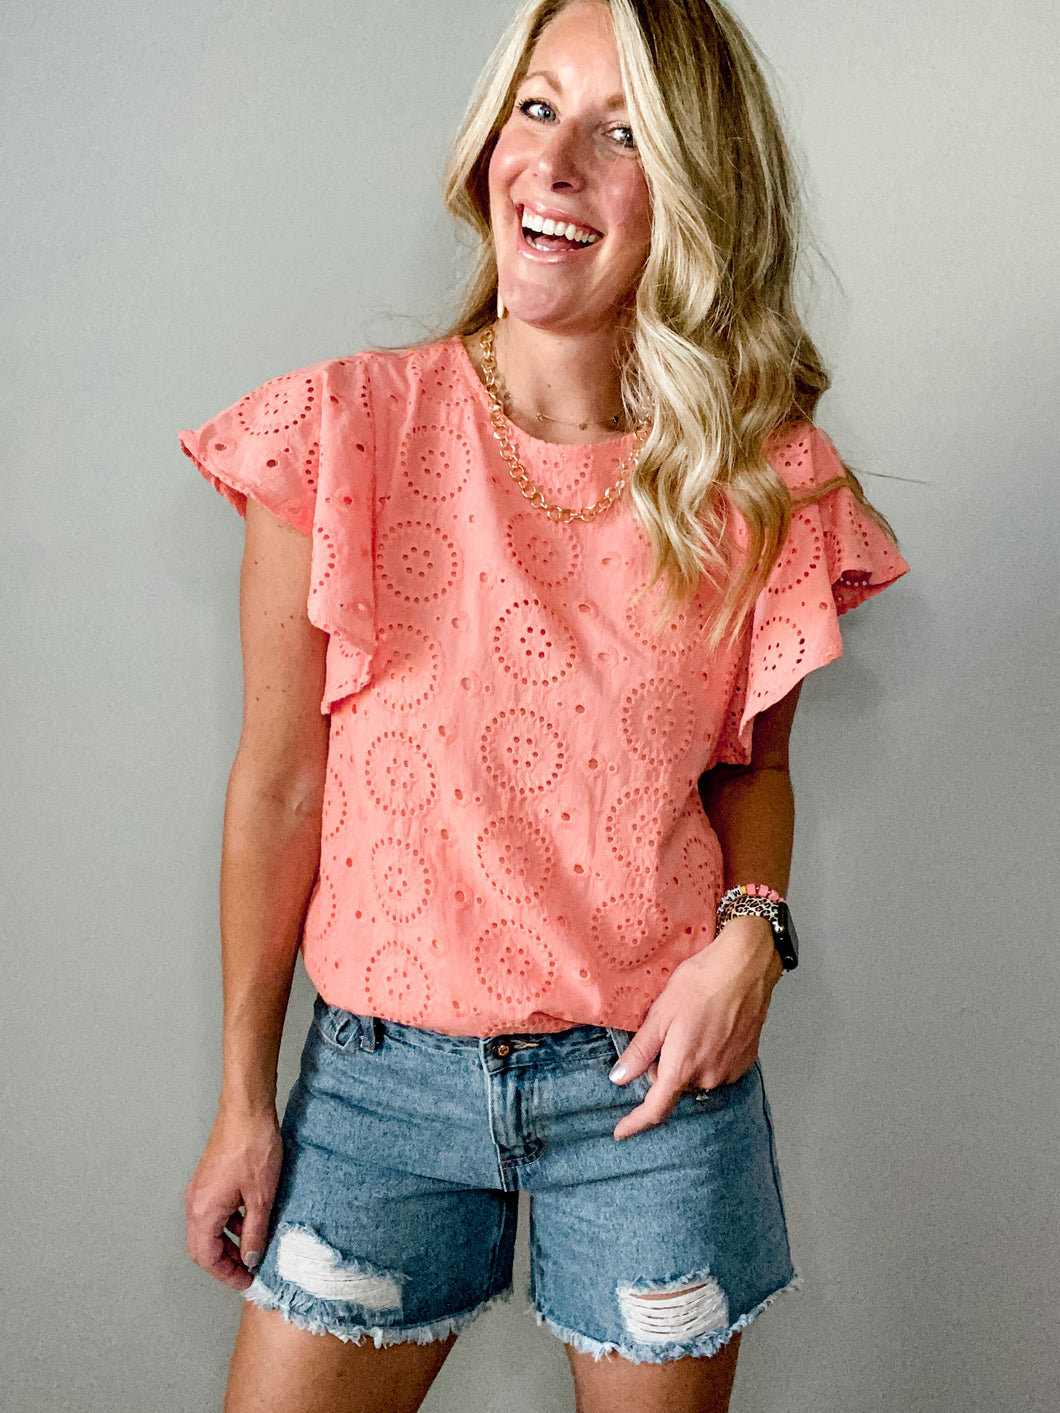 Lost in Love Eyelet Top